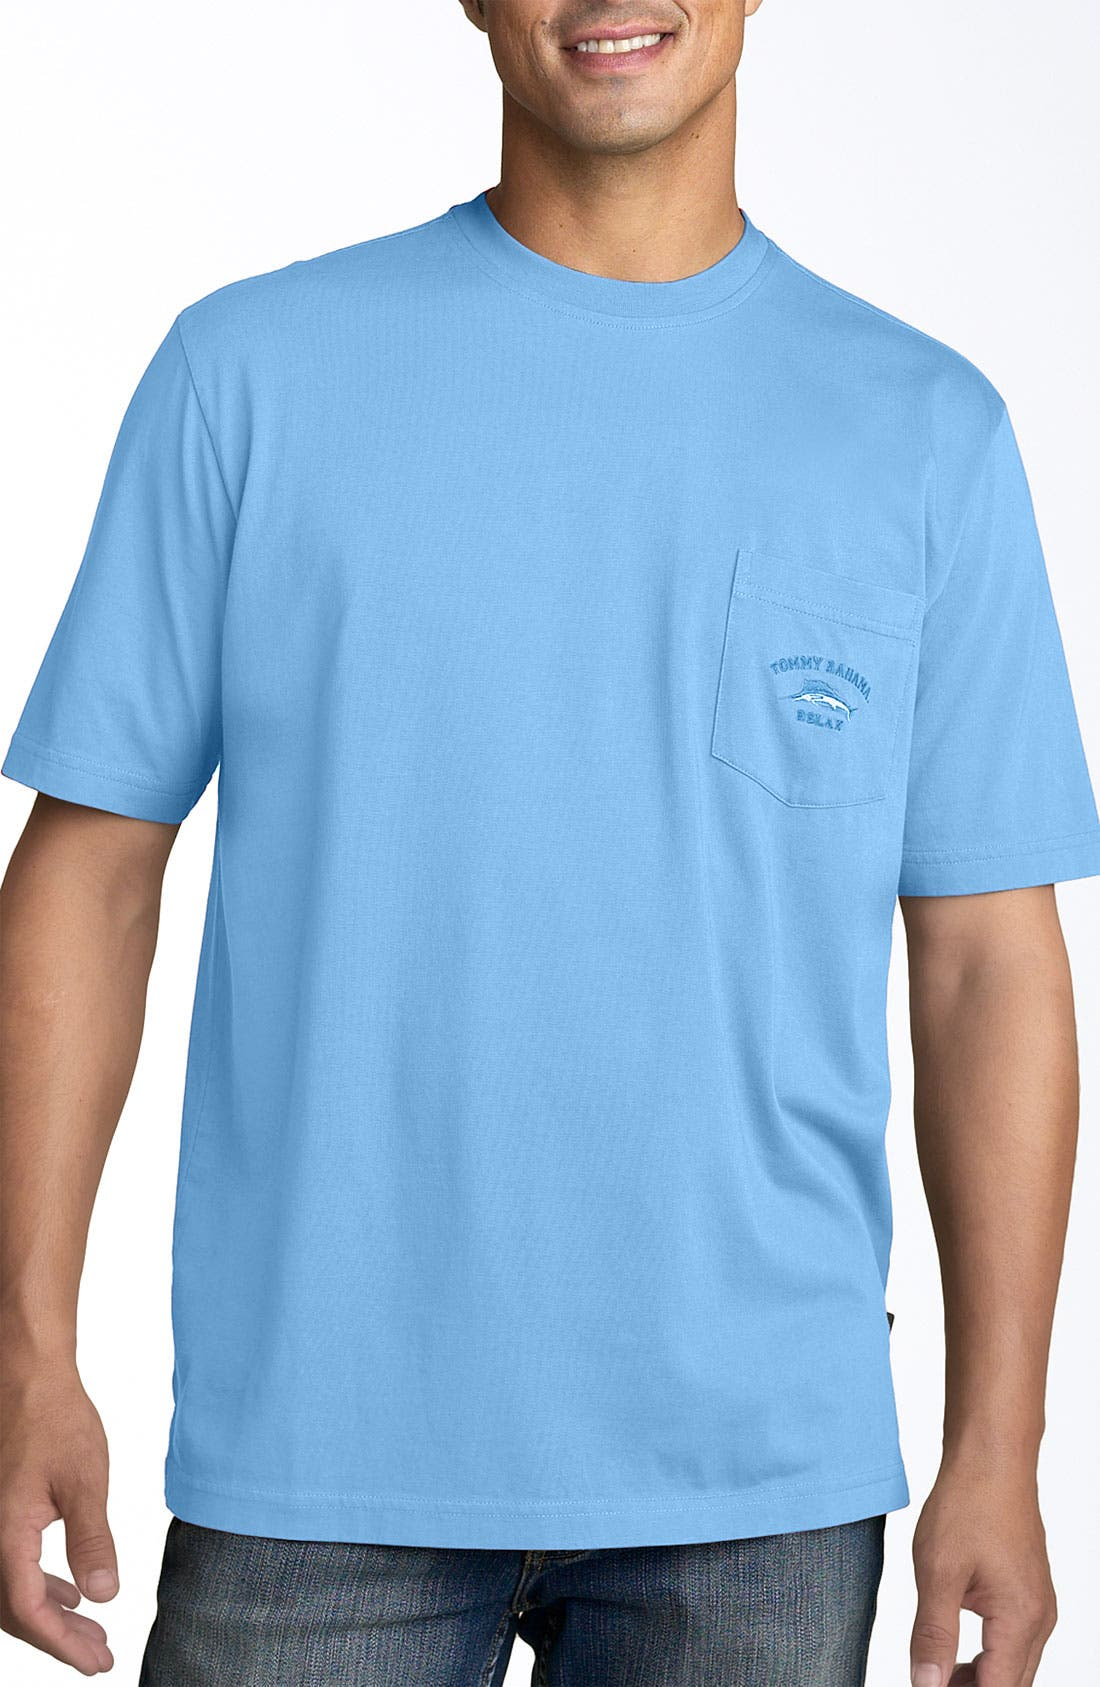 Alternate Image 1 Selected - Tommy Bahama Relax 'Bali High Tide' Regular Fit T-Shirt